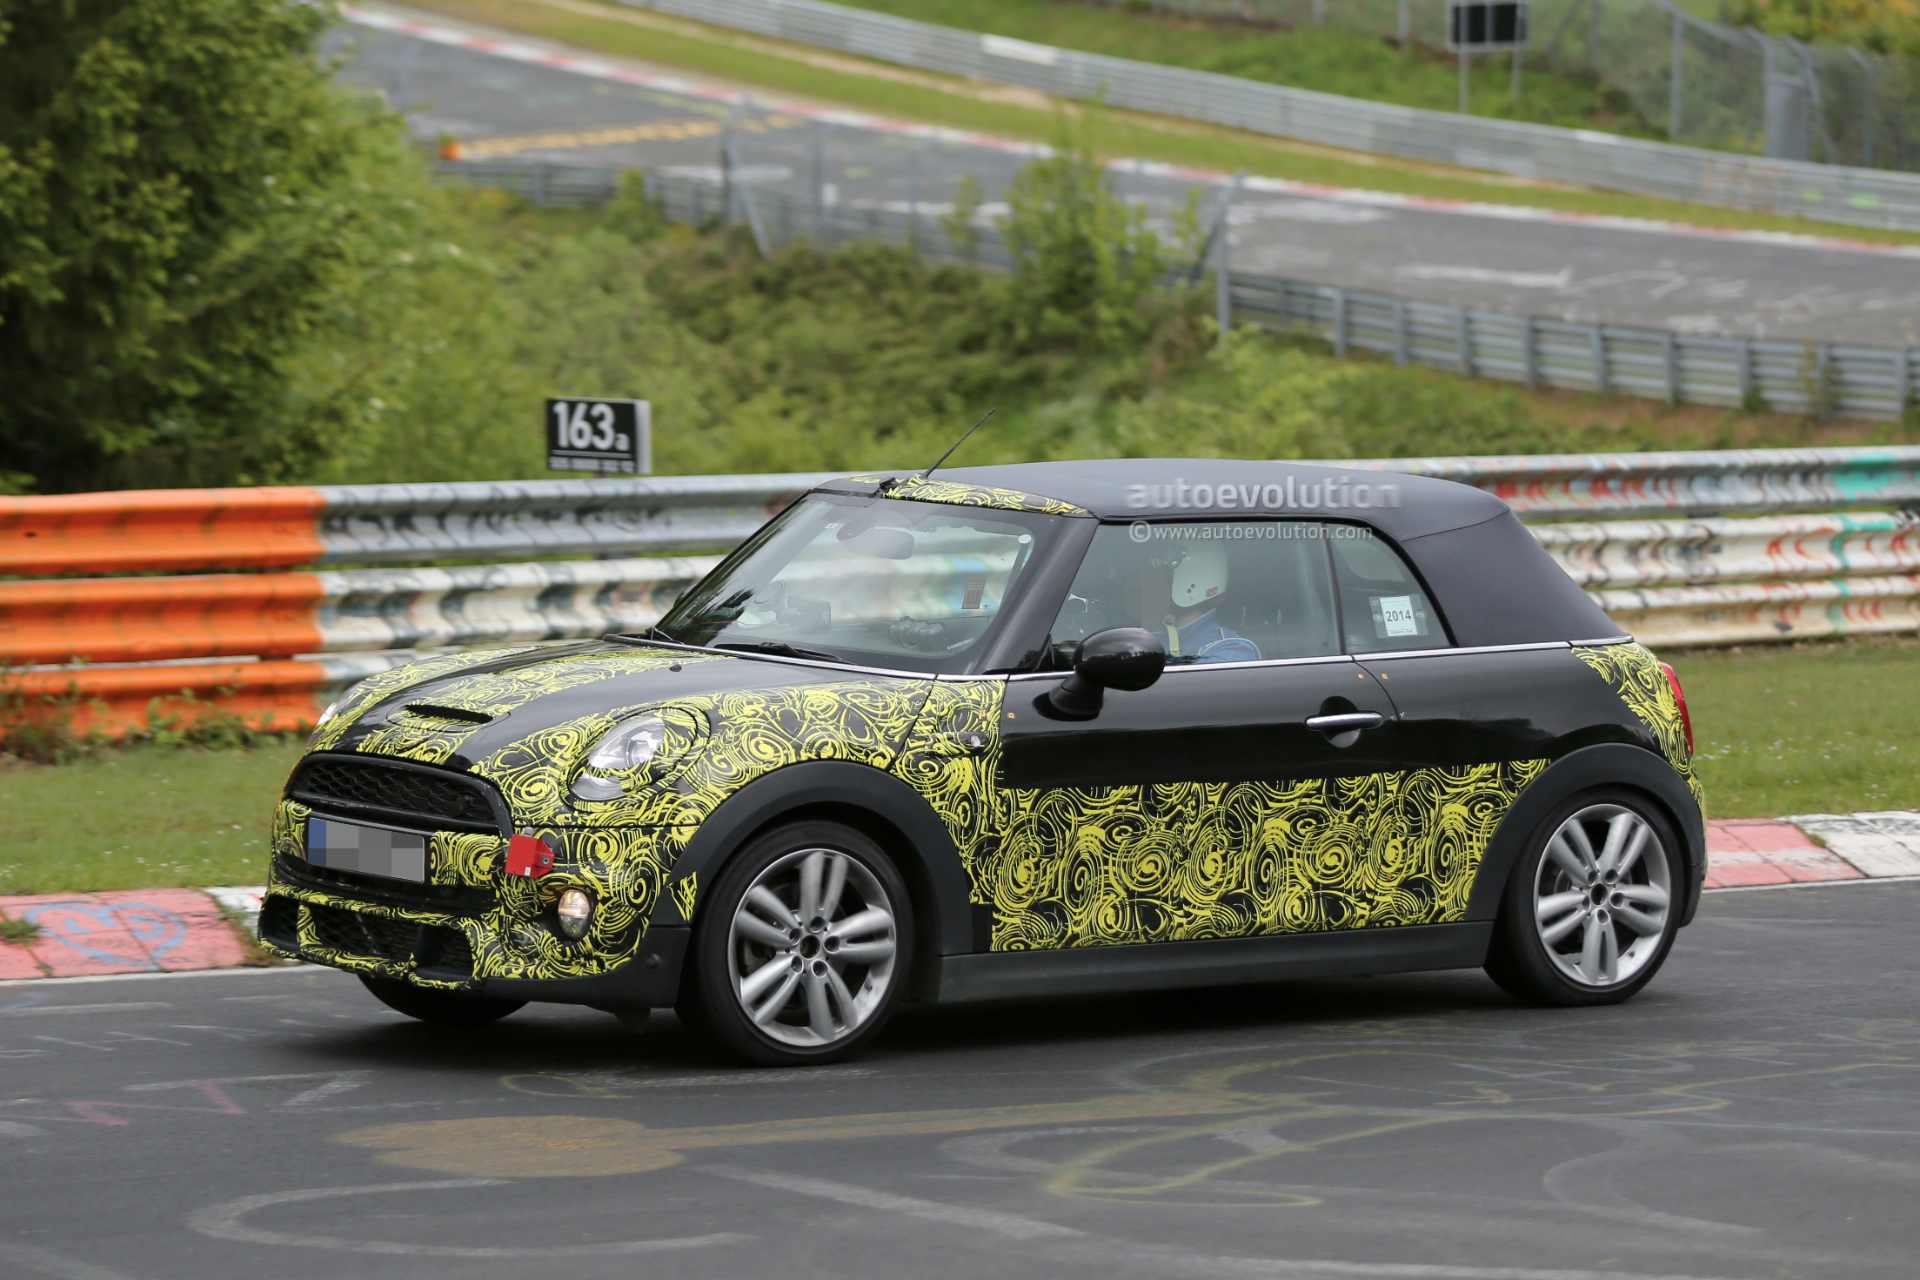 Mini cooper s 5 door picture 26 of 159 my 2015 size 1024x768 - 2015 Mini Cooper S Convertible Spied On The Nurburgring